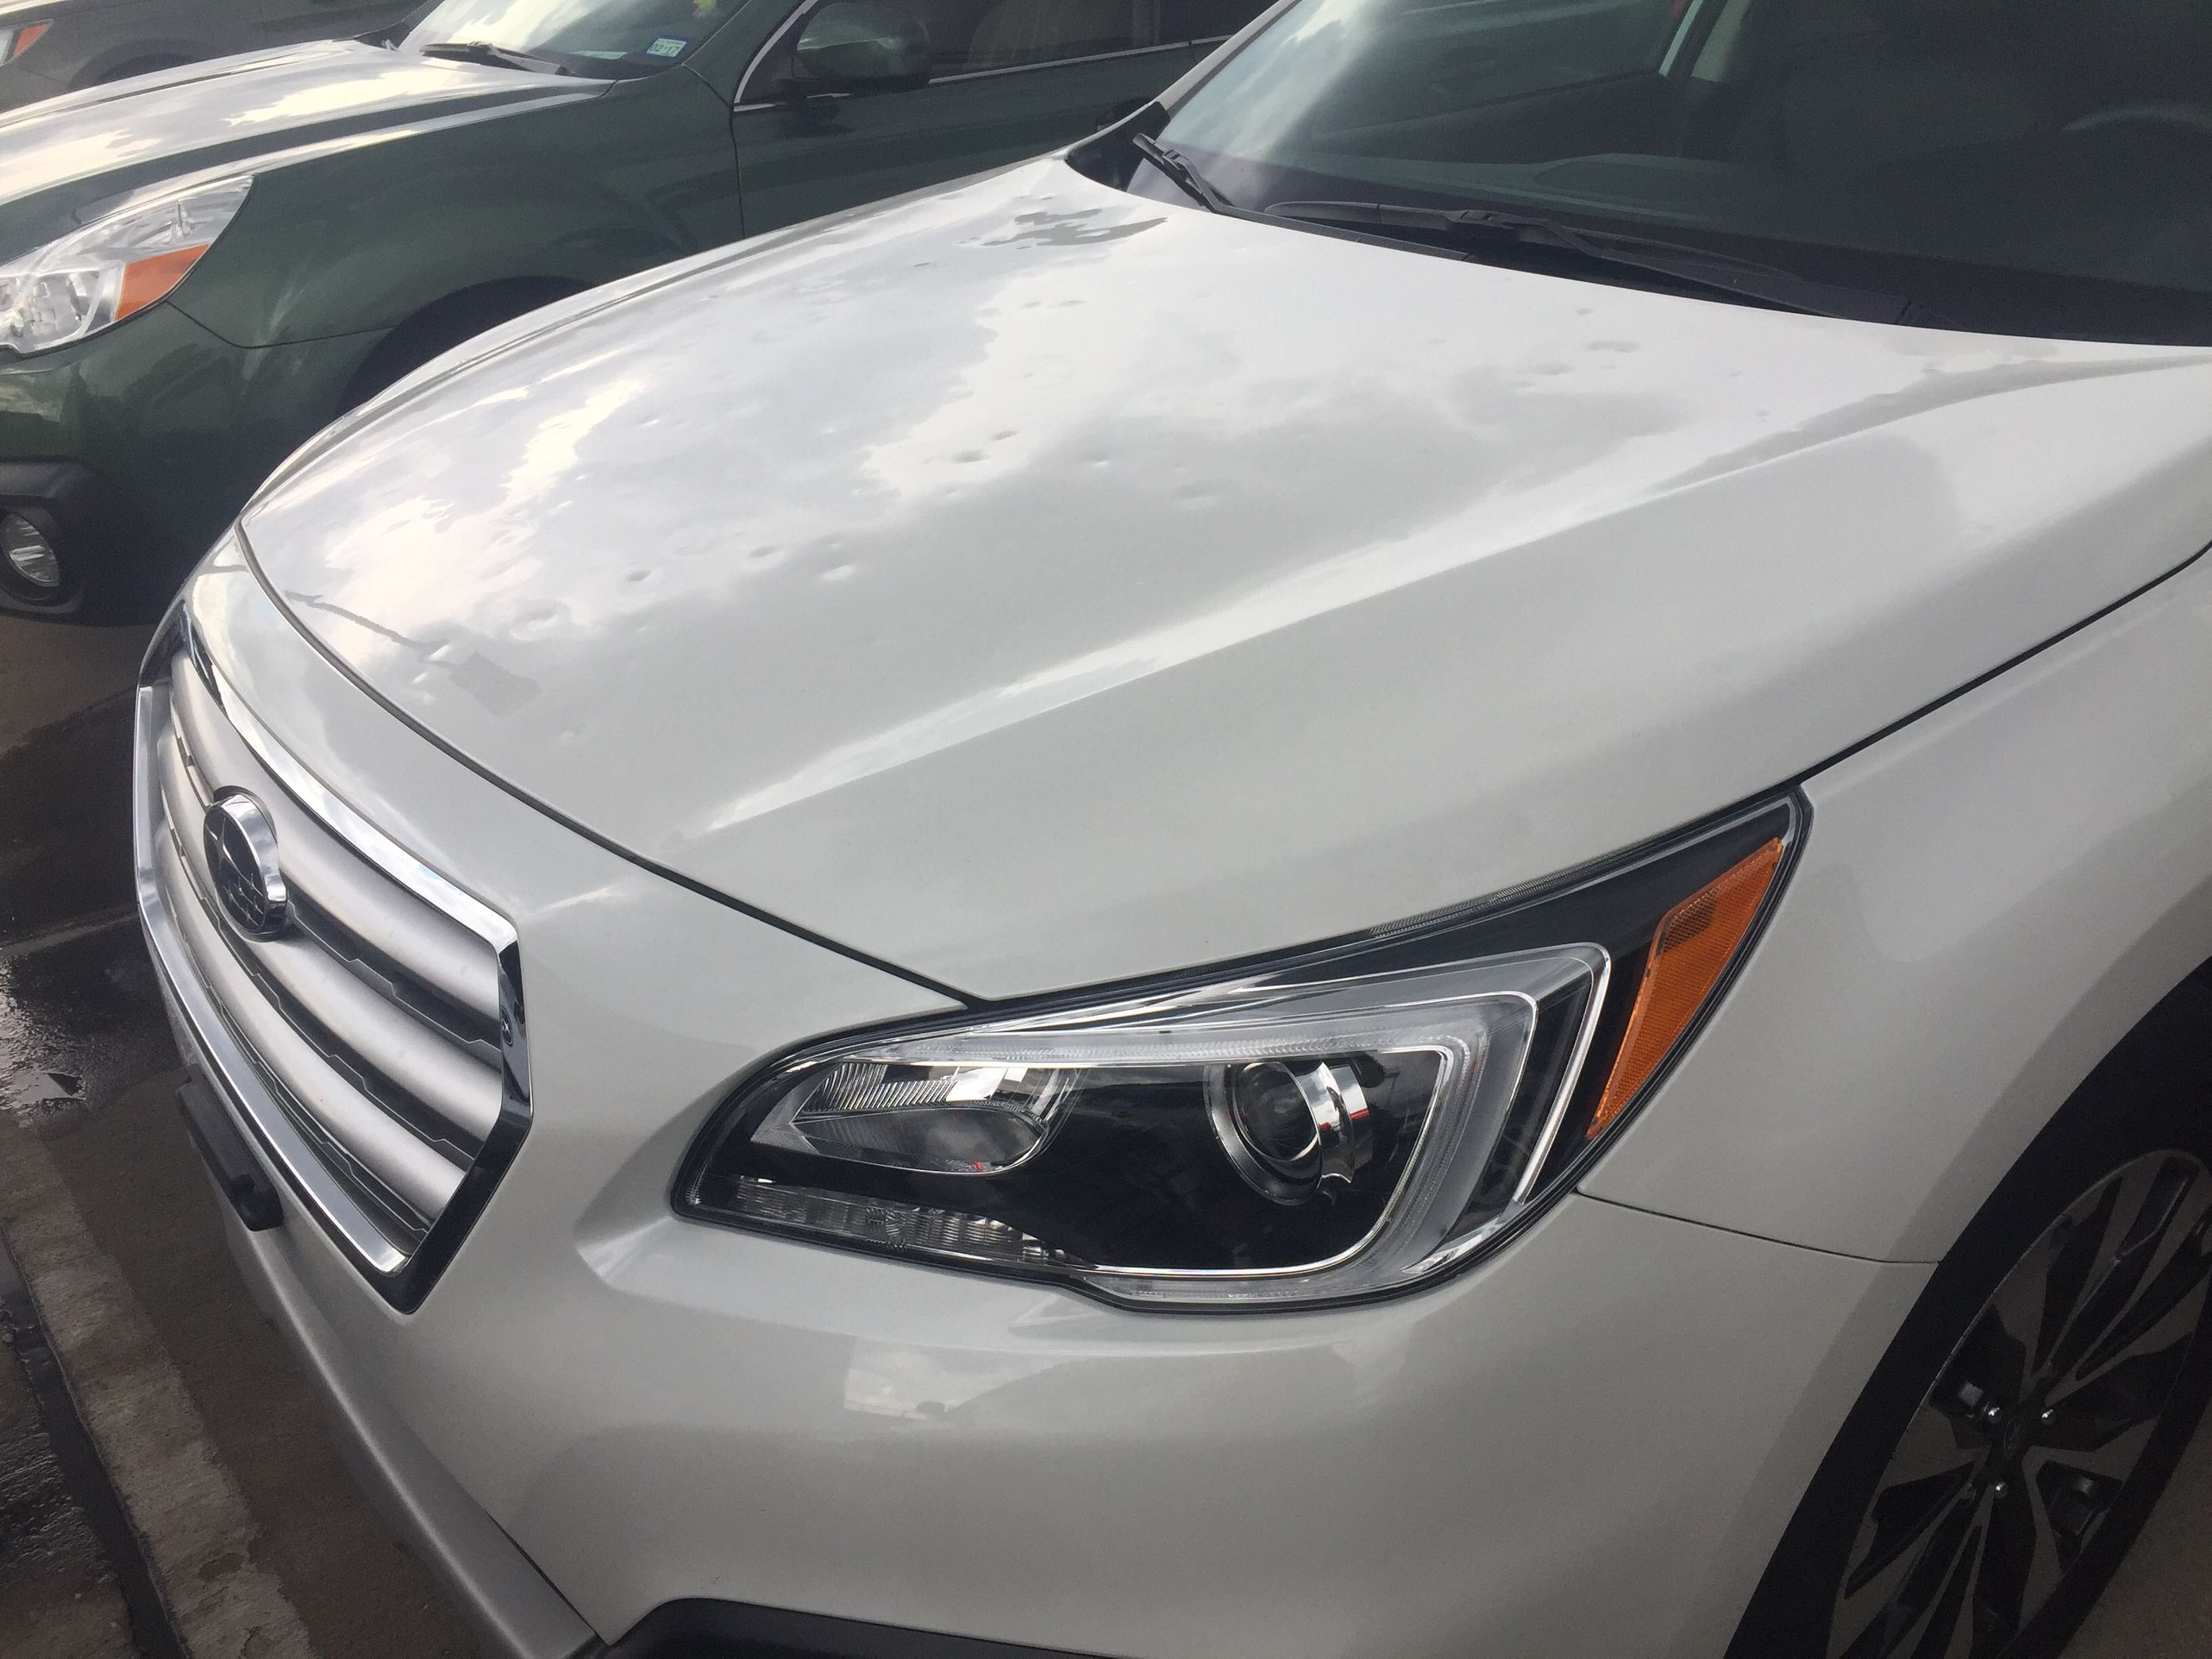 New 2017 w/ Hail Damage - Good Deal or Pass? (with photos ...